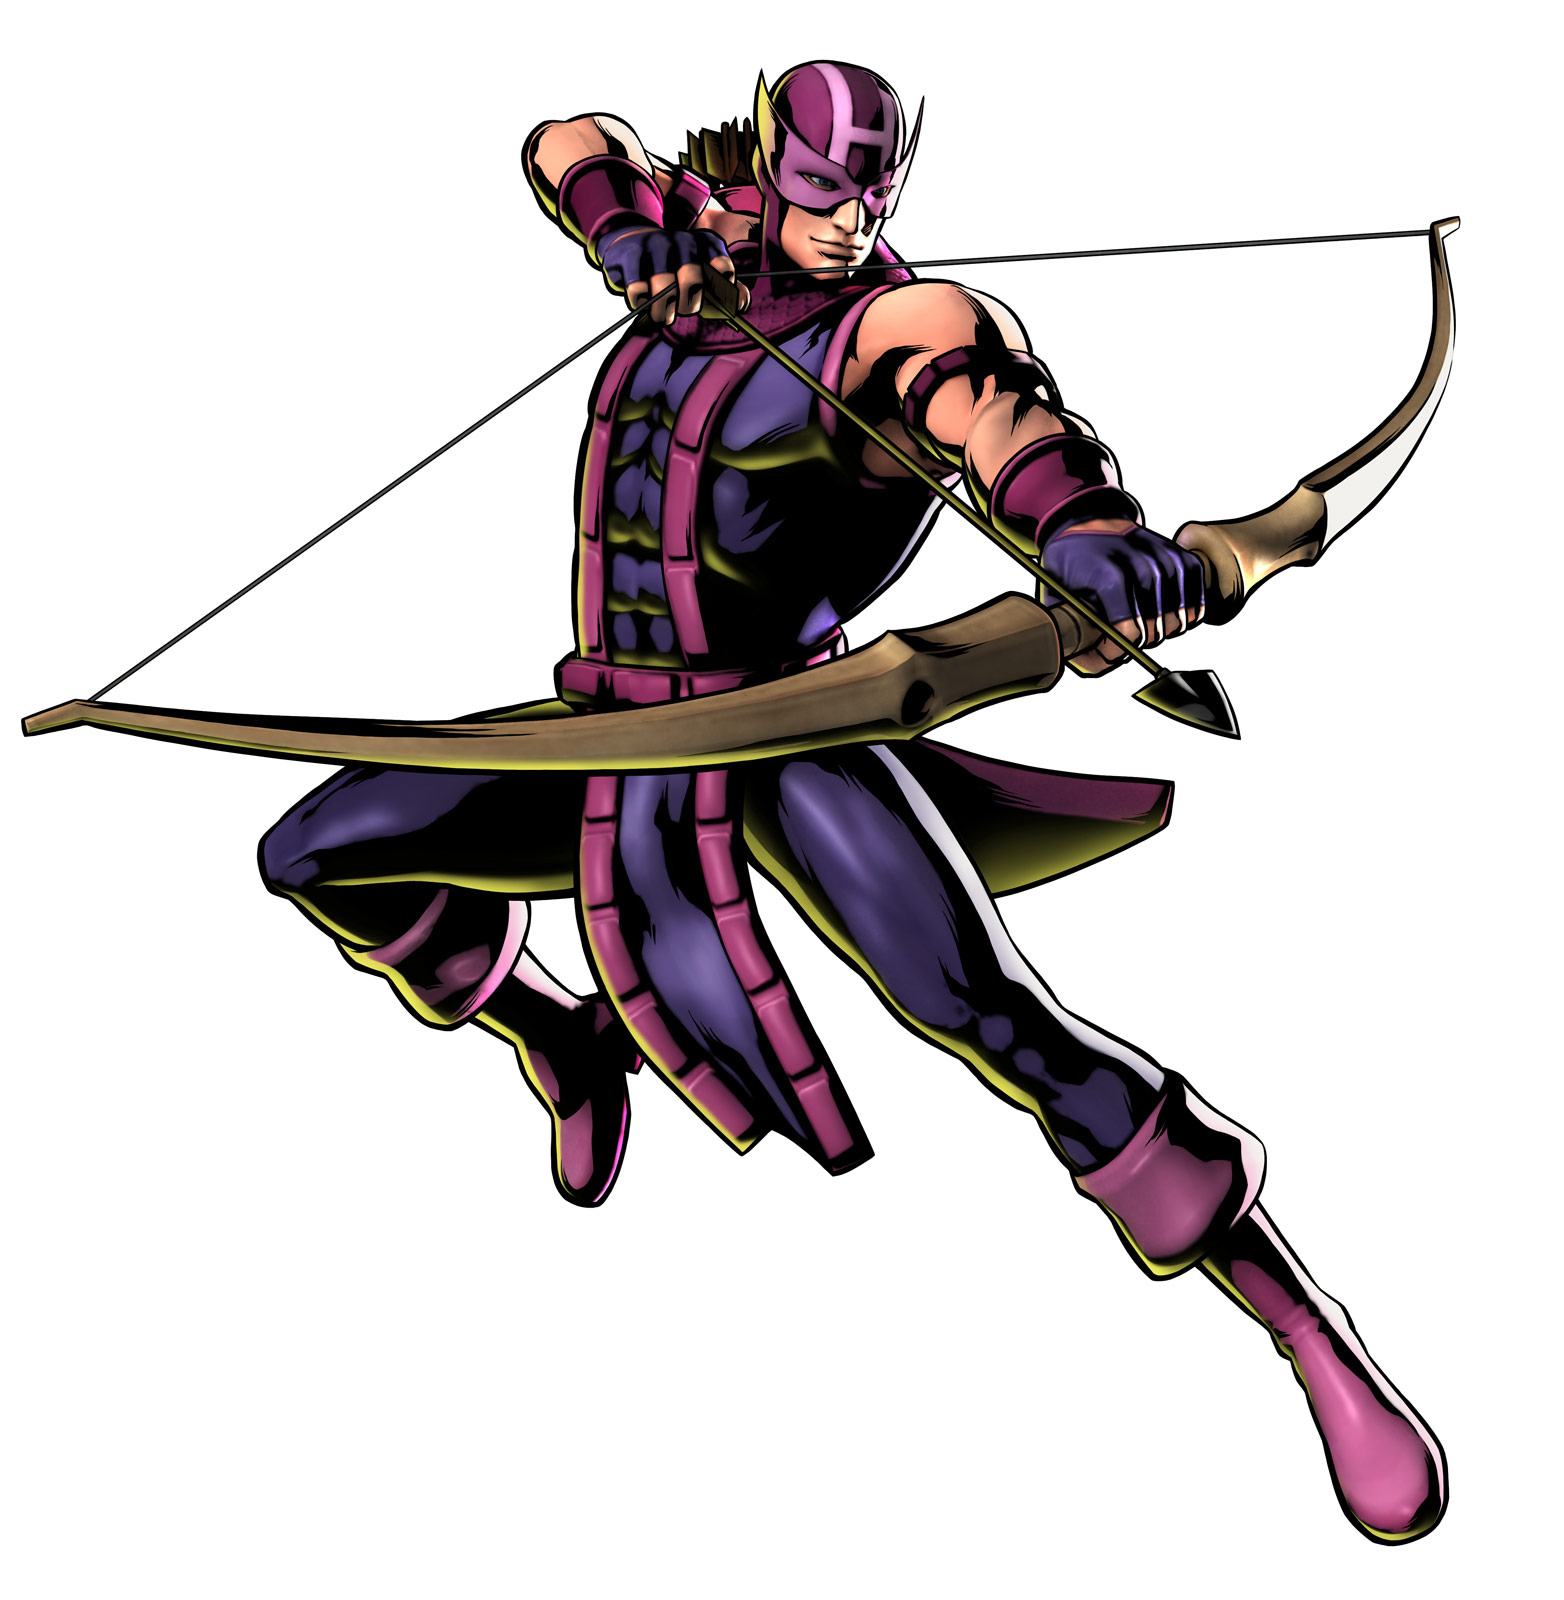 Hawkeye's Ultimate Marvel vs. Capcom 3 artwork